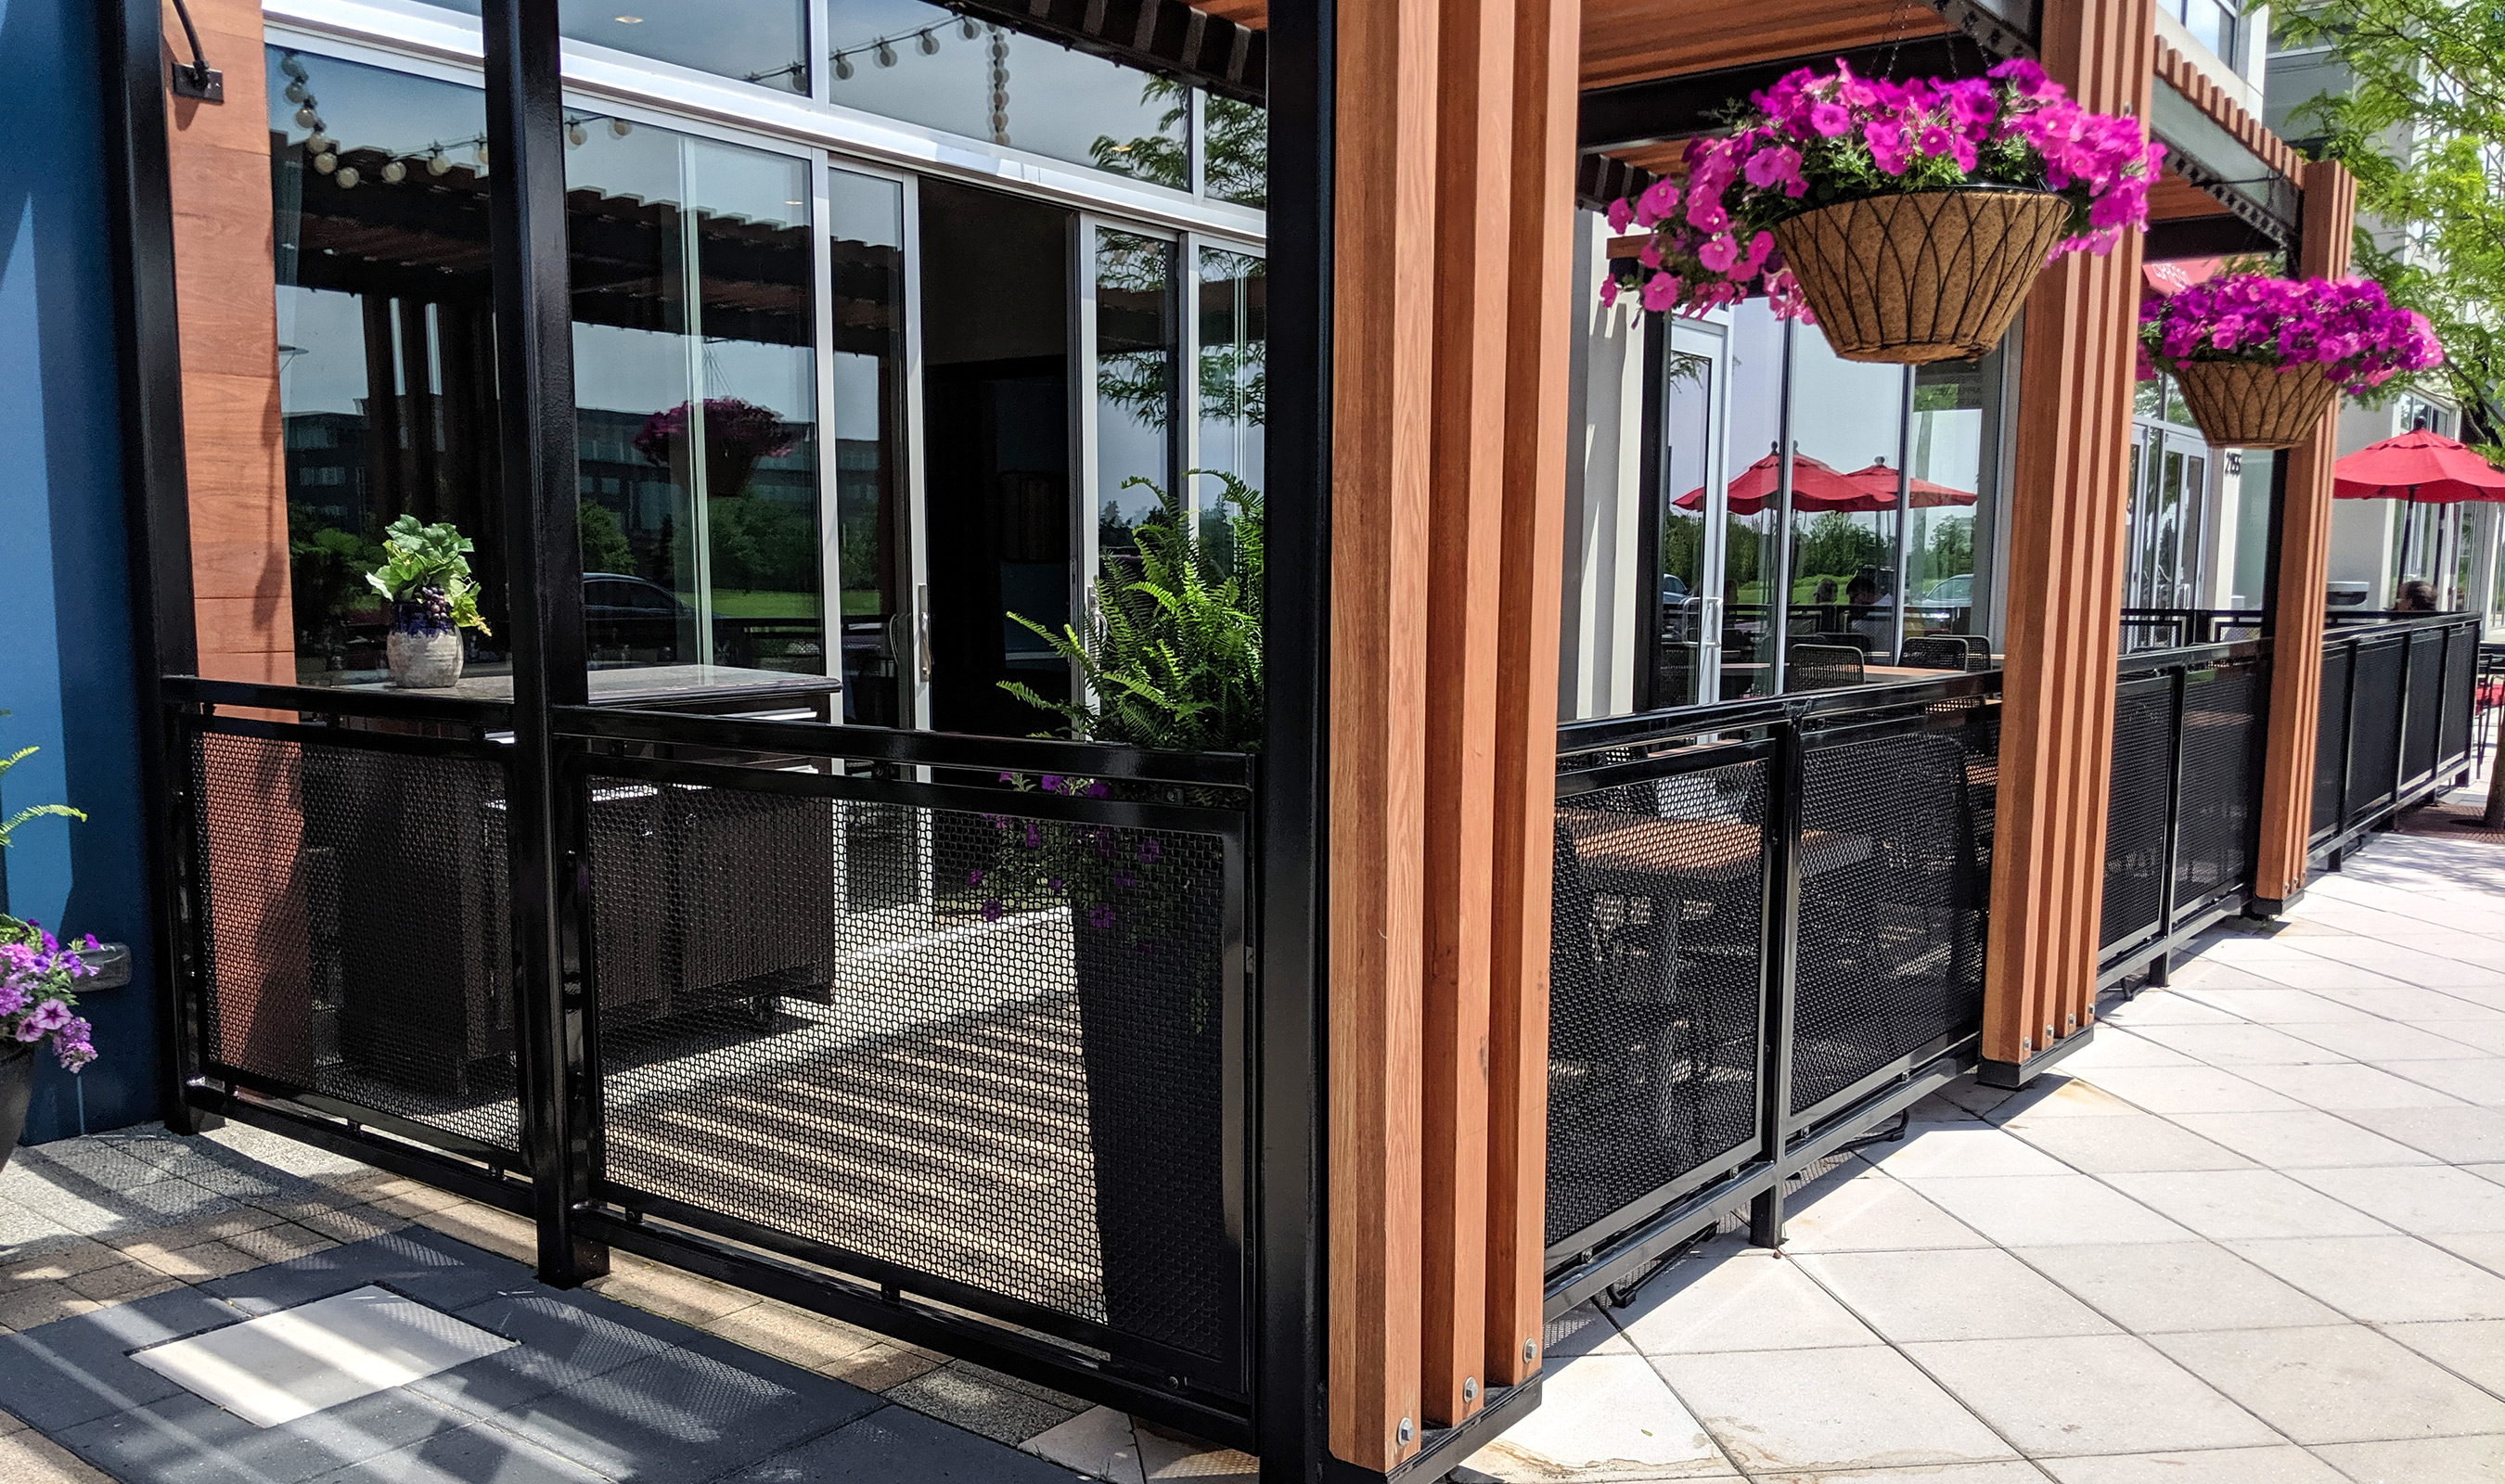 The patio at Che Figata uses Banker Wire's H-1 wire mesh pattern as railing infill.